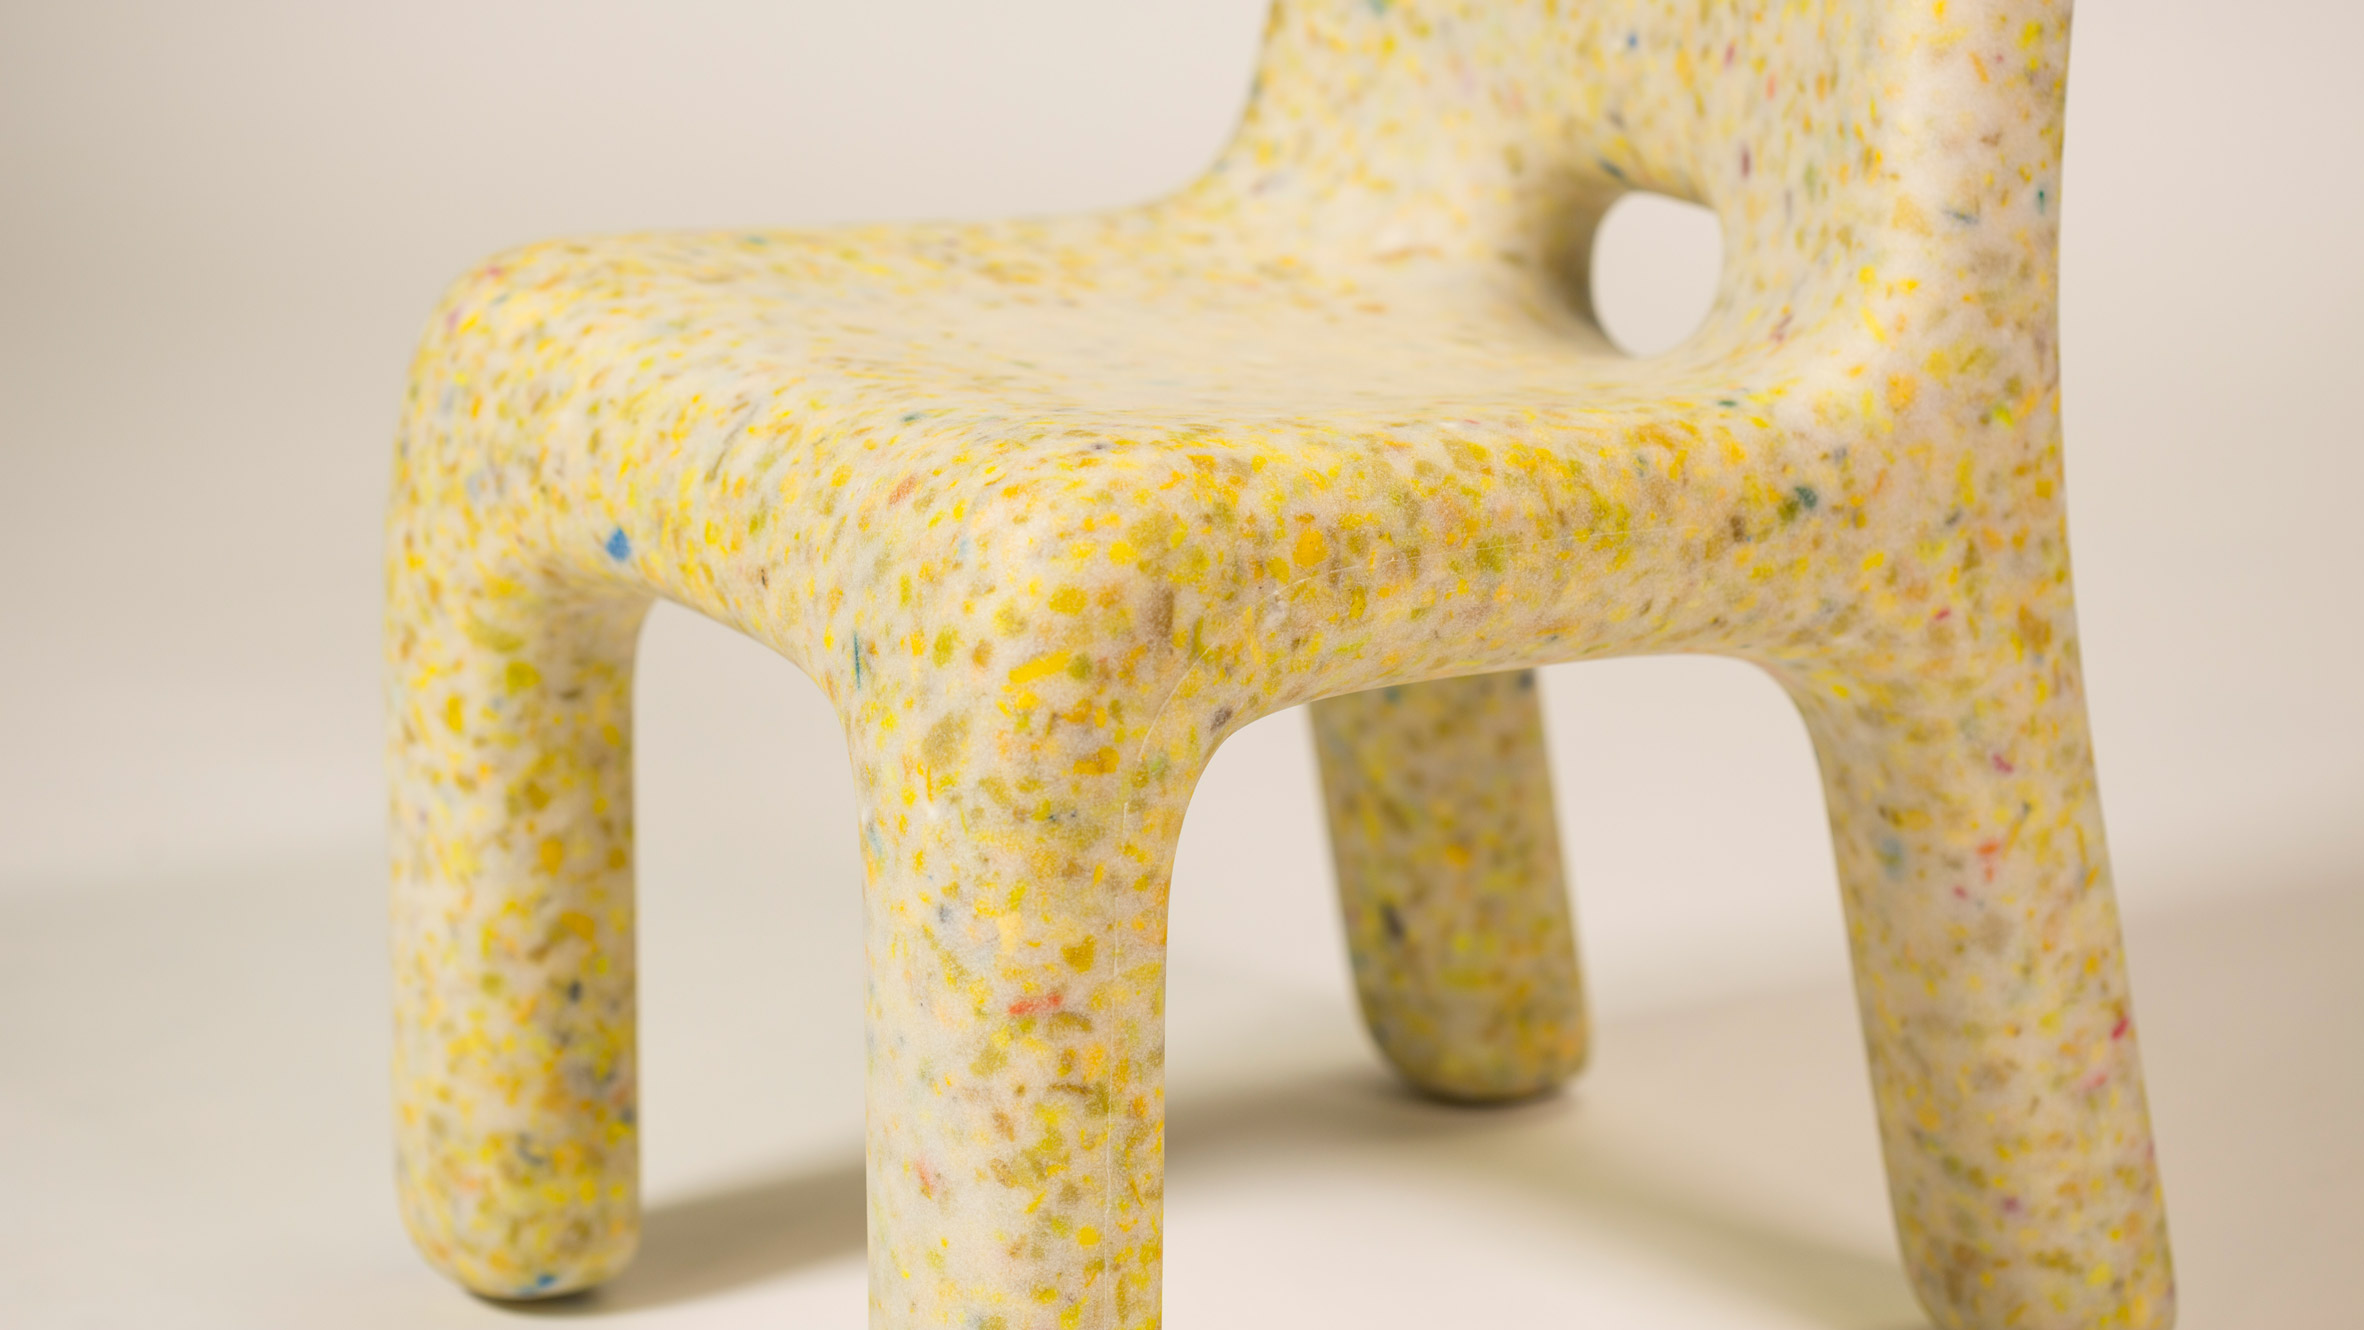 Plastic Furniture Made From Old Toys Introduces Kids To The Circular Economy